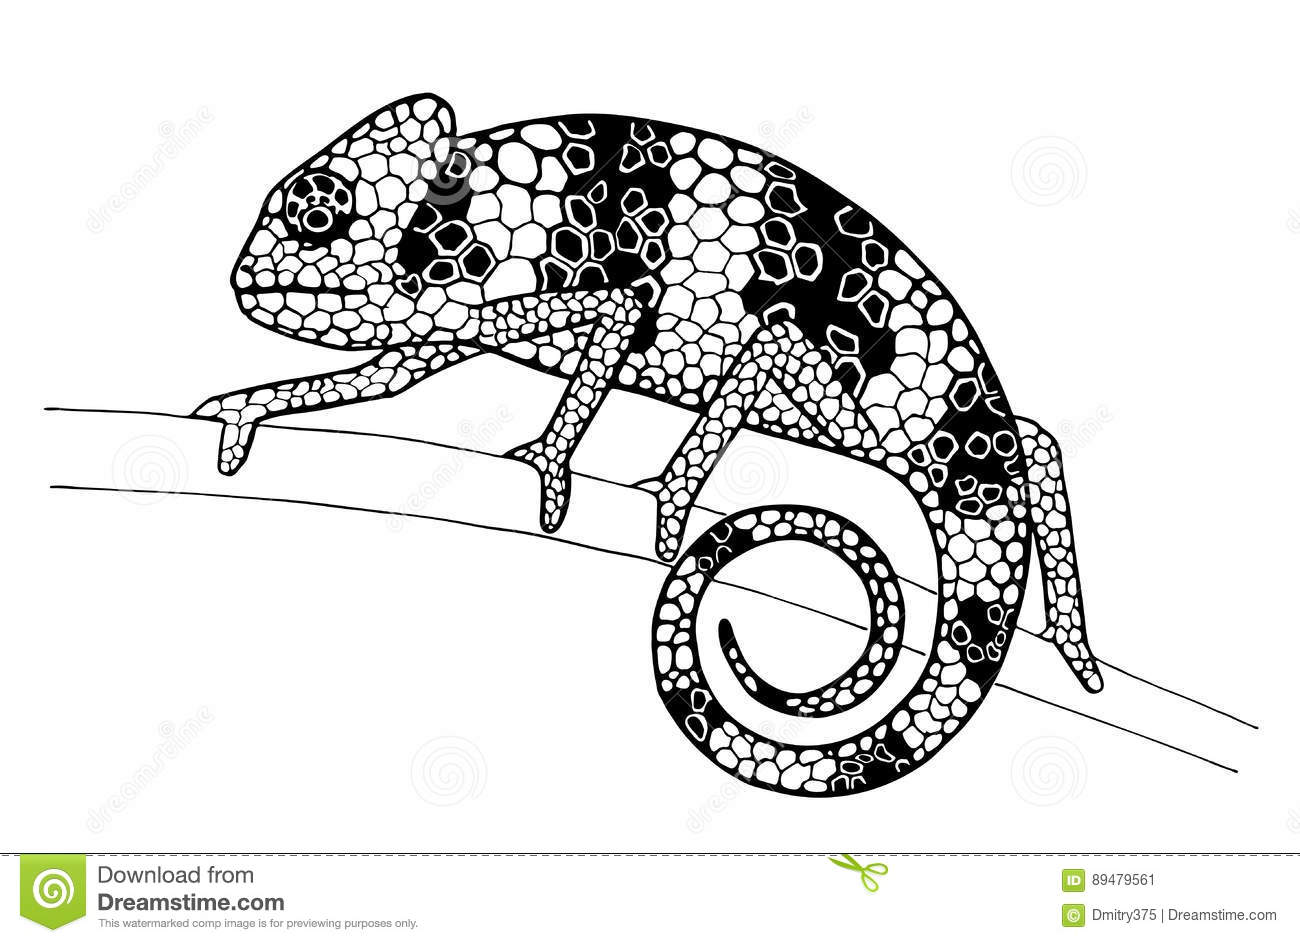 9b4e363fc Chameleon on a branch, ink drawing. Hand drawn black and white chameleon  sitting on